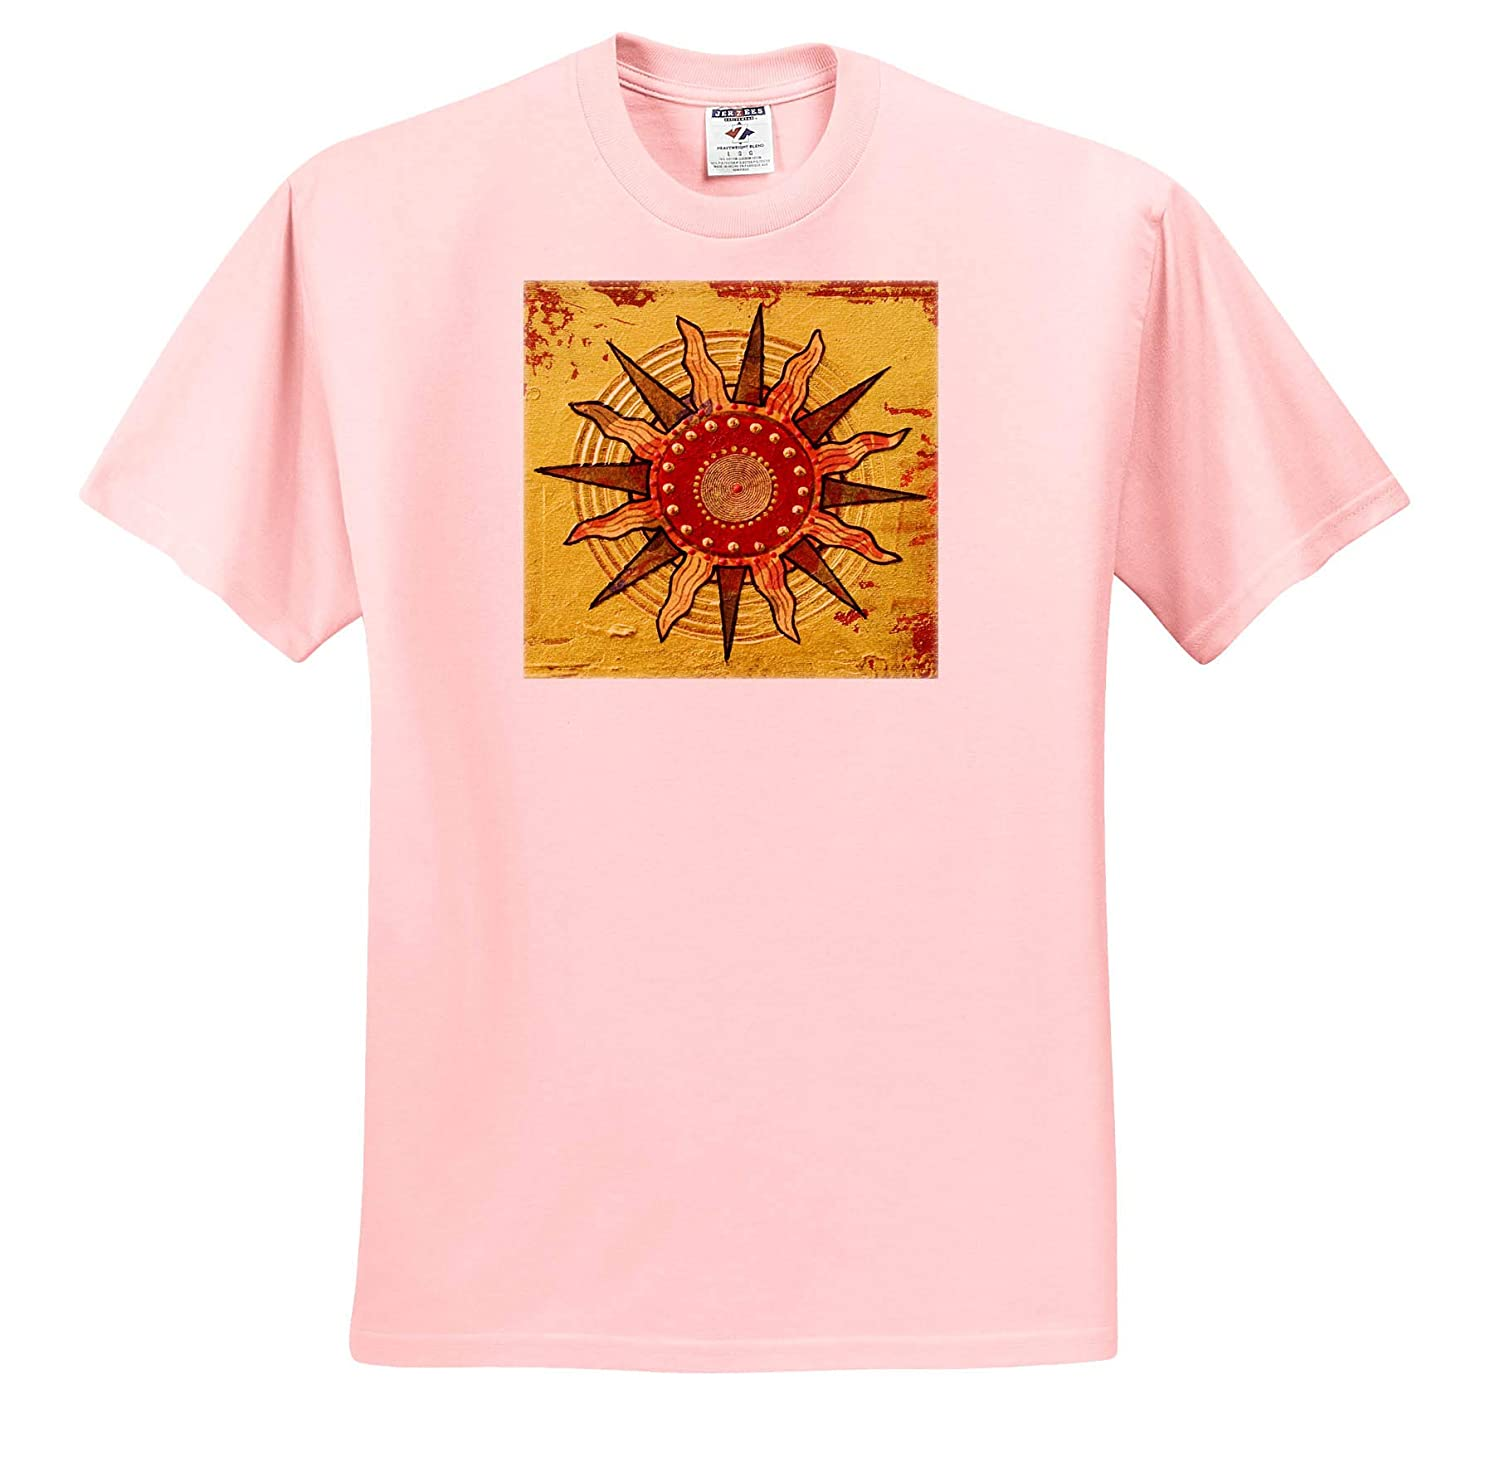 T-Shirts Mixed Media Collage Art Painting with Abstract Sun Ornament 3dRose Andrea Haase Art Illustration